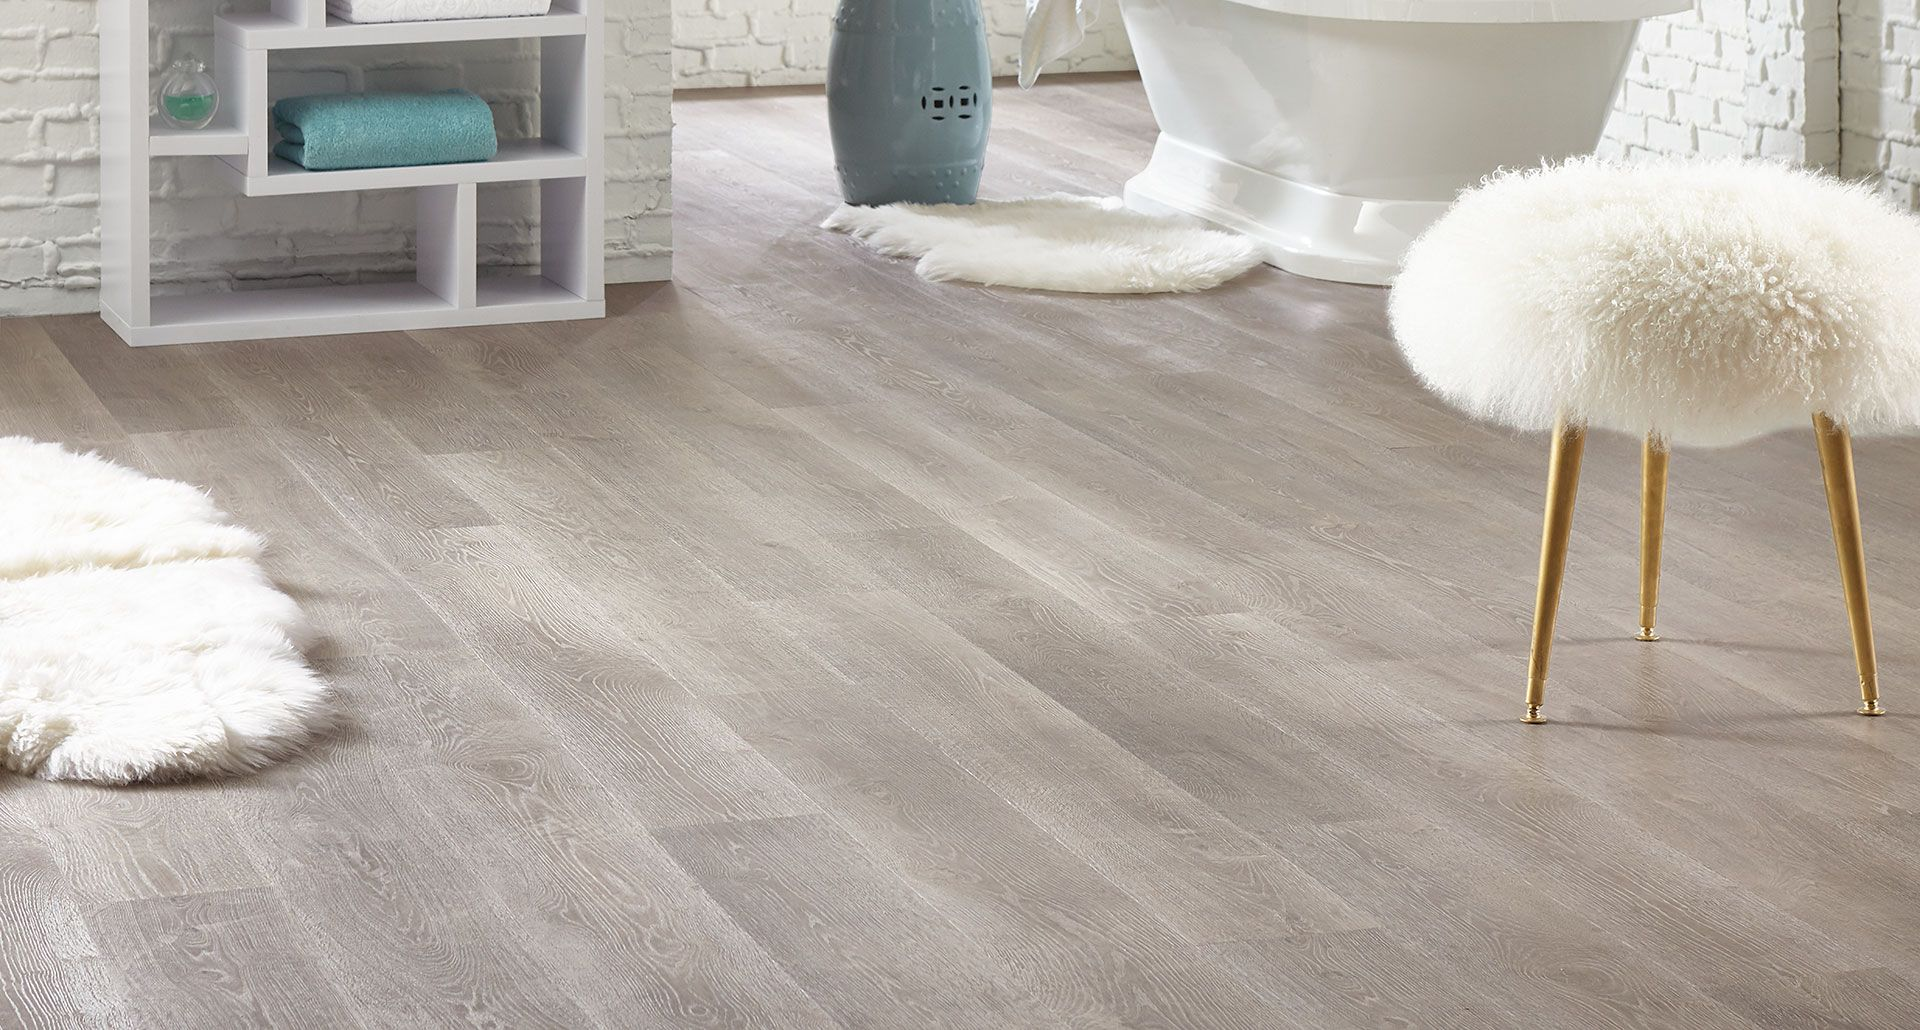 Cayman Oak Pergo Timbercraft Wetprotect Laminate Flooring Wood Laminate Flooring Wood Laminate Flooring